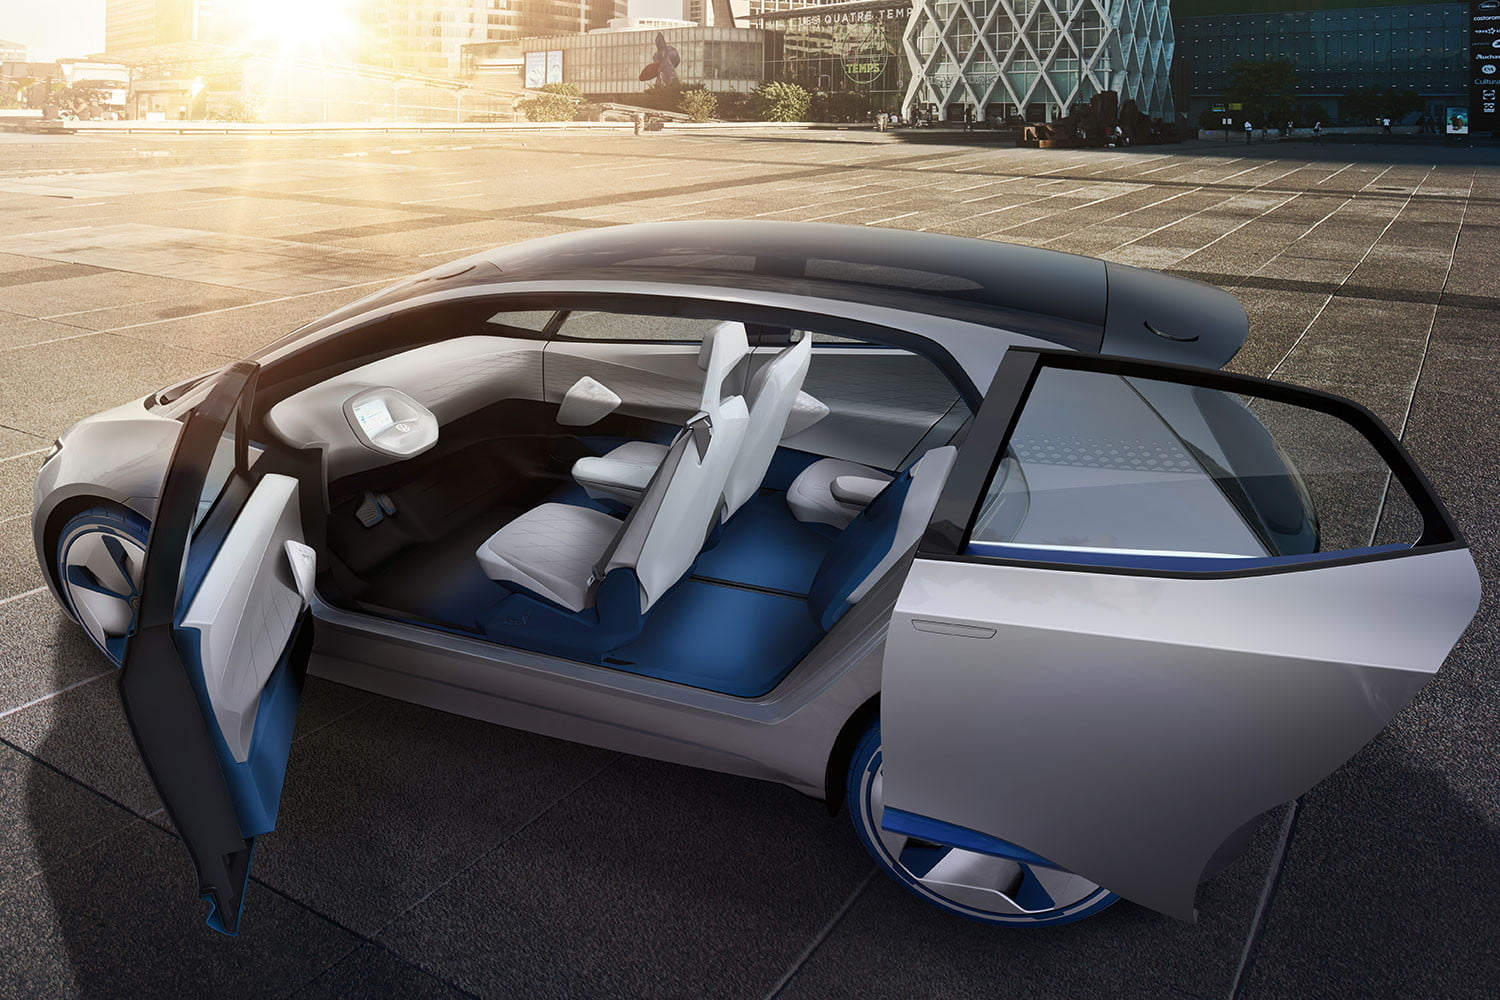 In Terms Of Exterior Design The I D Concept Has A Familiarly Futuristic Look To It S Part Le Fixture And Tron Light Cycle